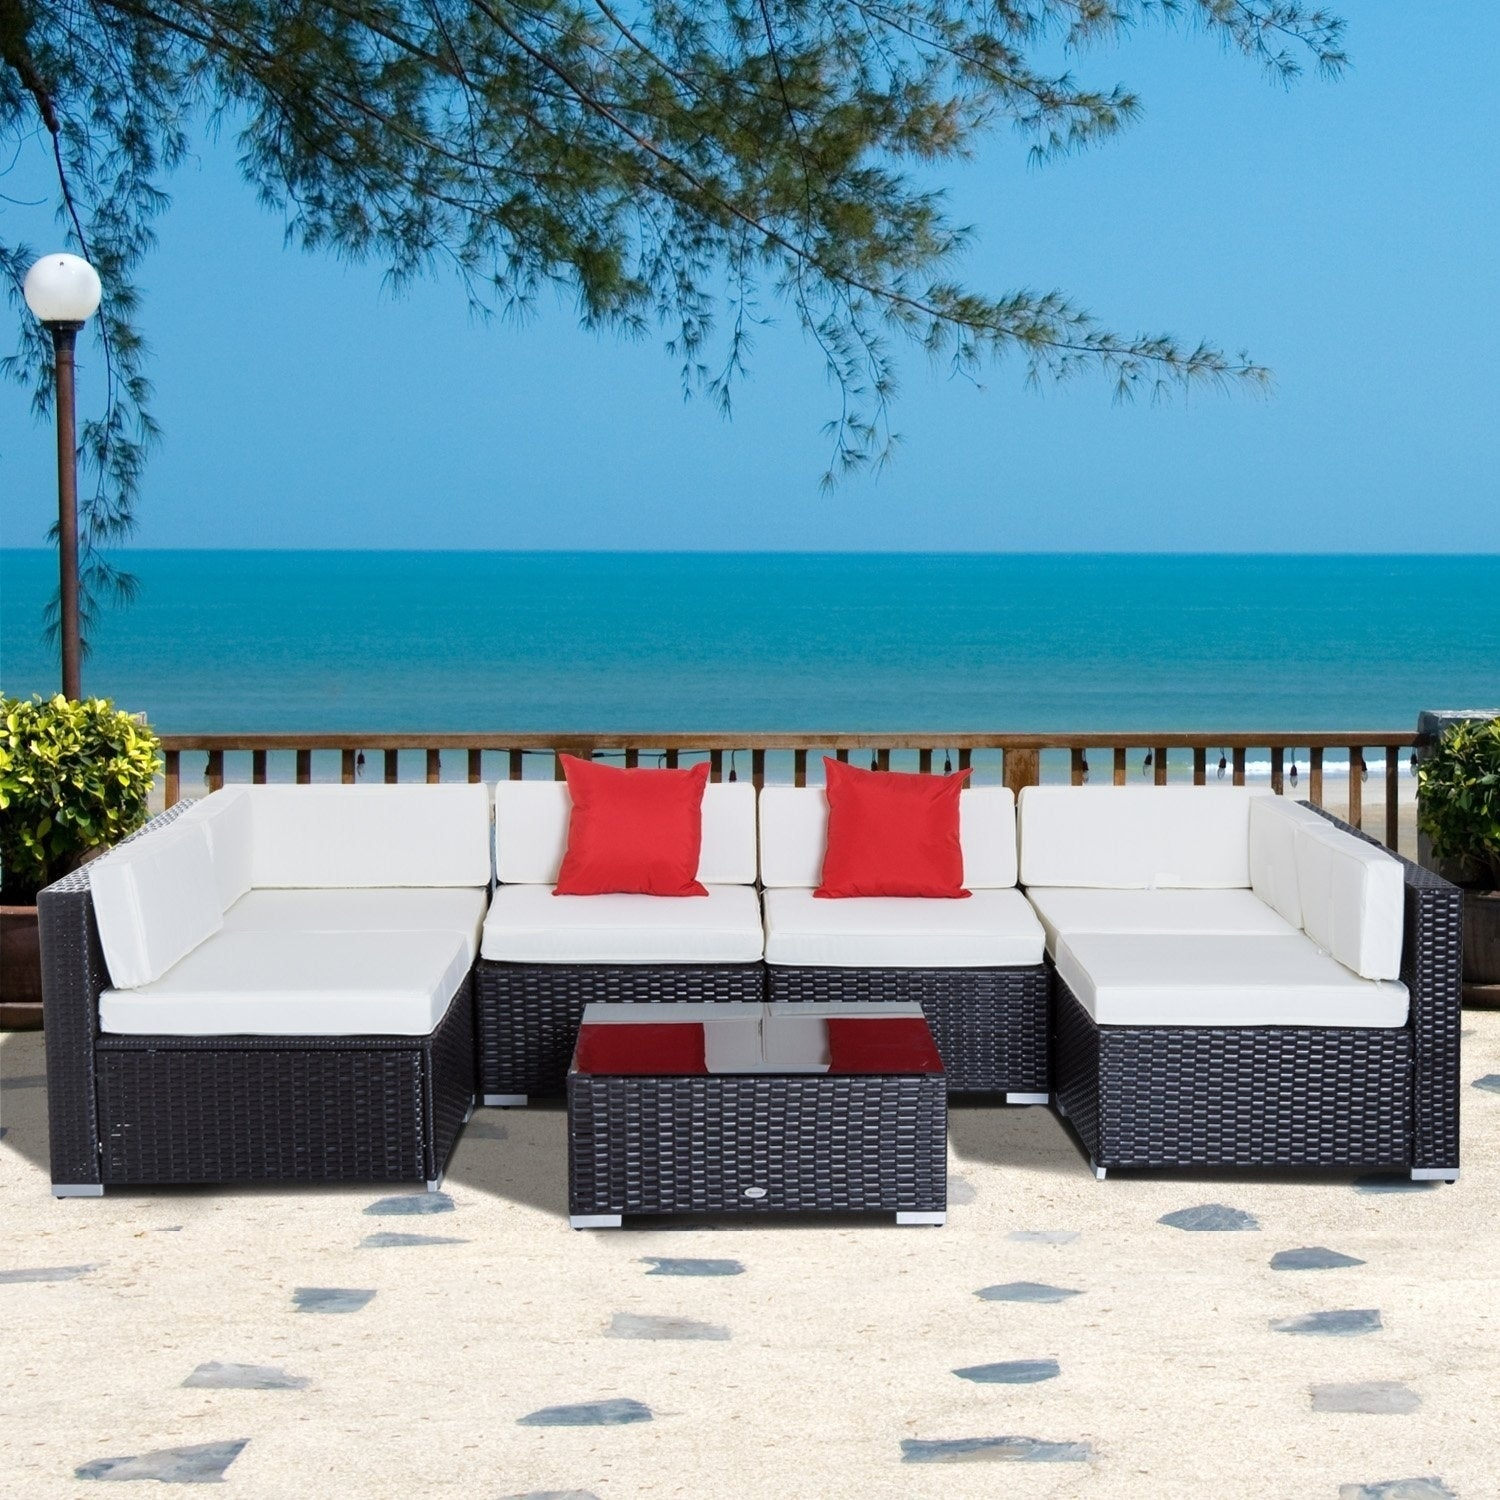 Shop Outsunny 7 Piece Wicker Sofa Sectional Rattan Conversation ...